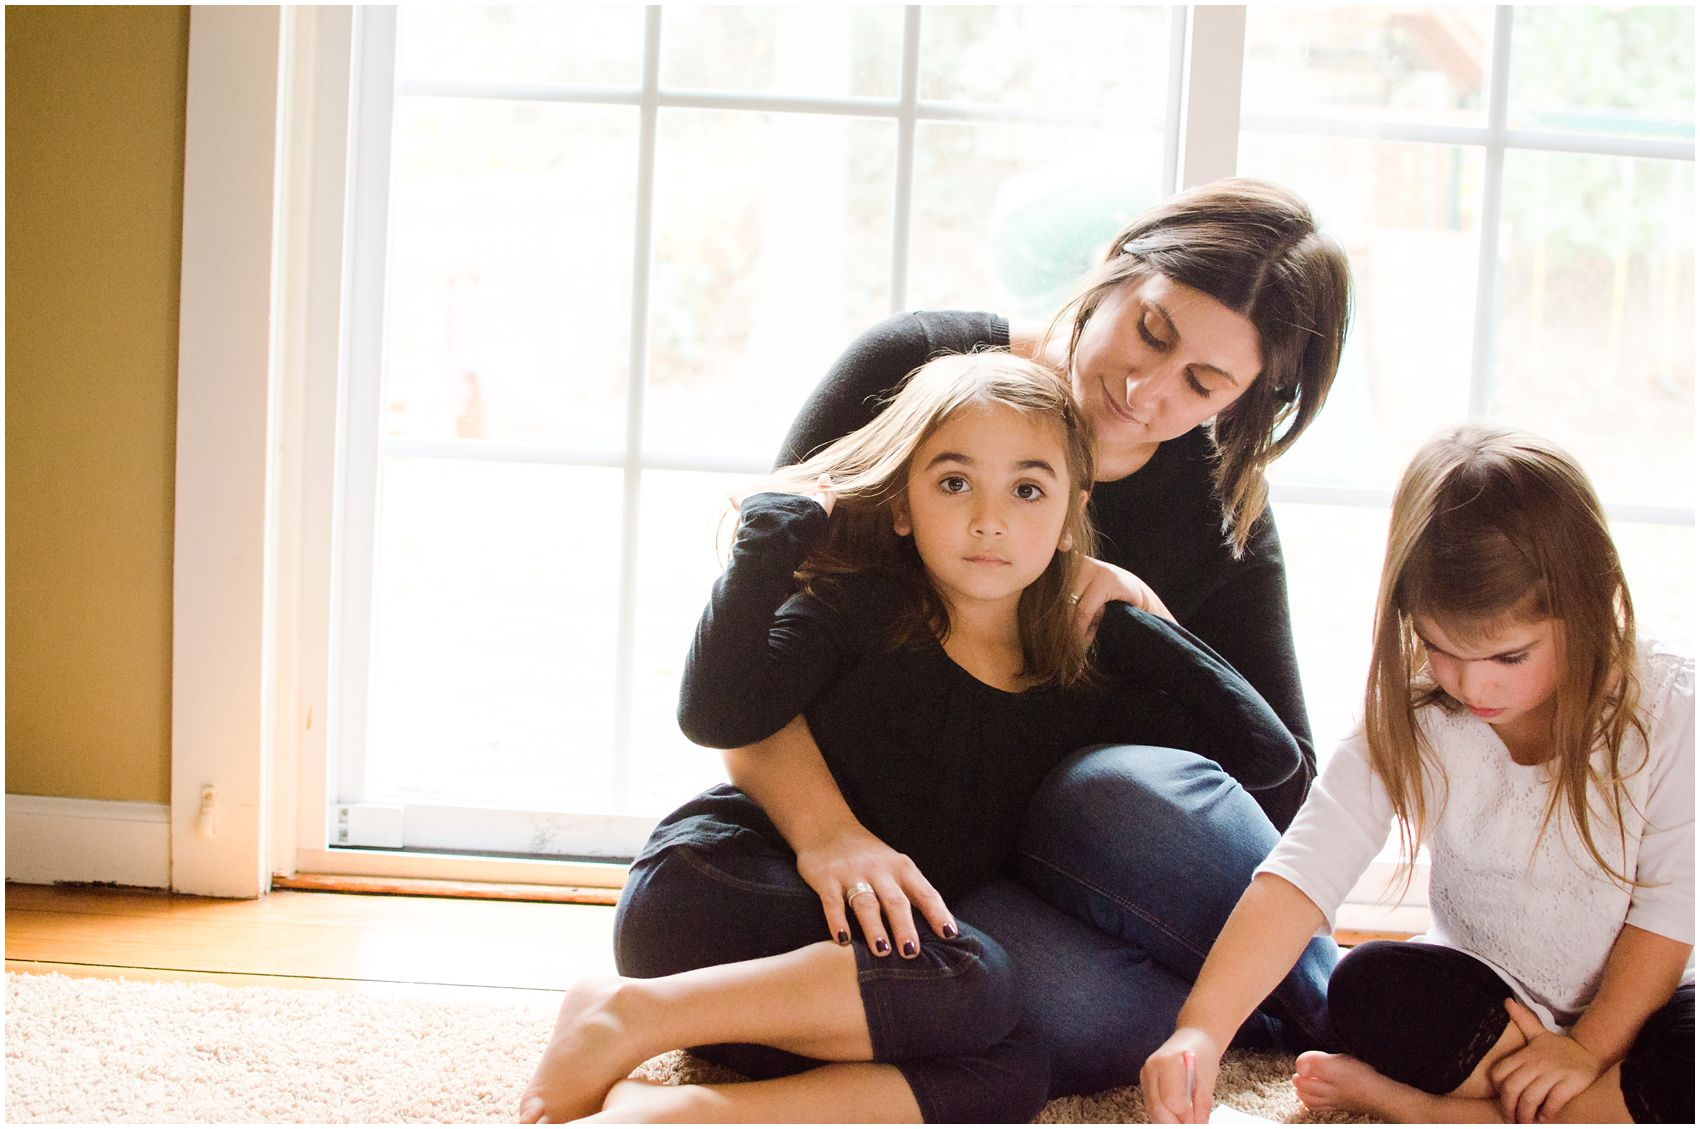 Motherhood and Family Photography with mother and two daughters snuggling together in Tenafly , NJ home